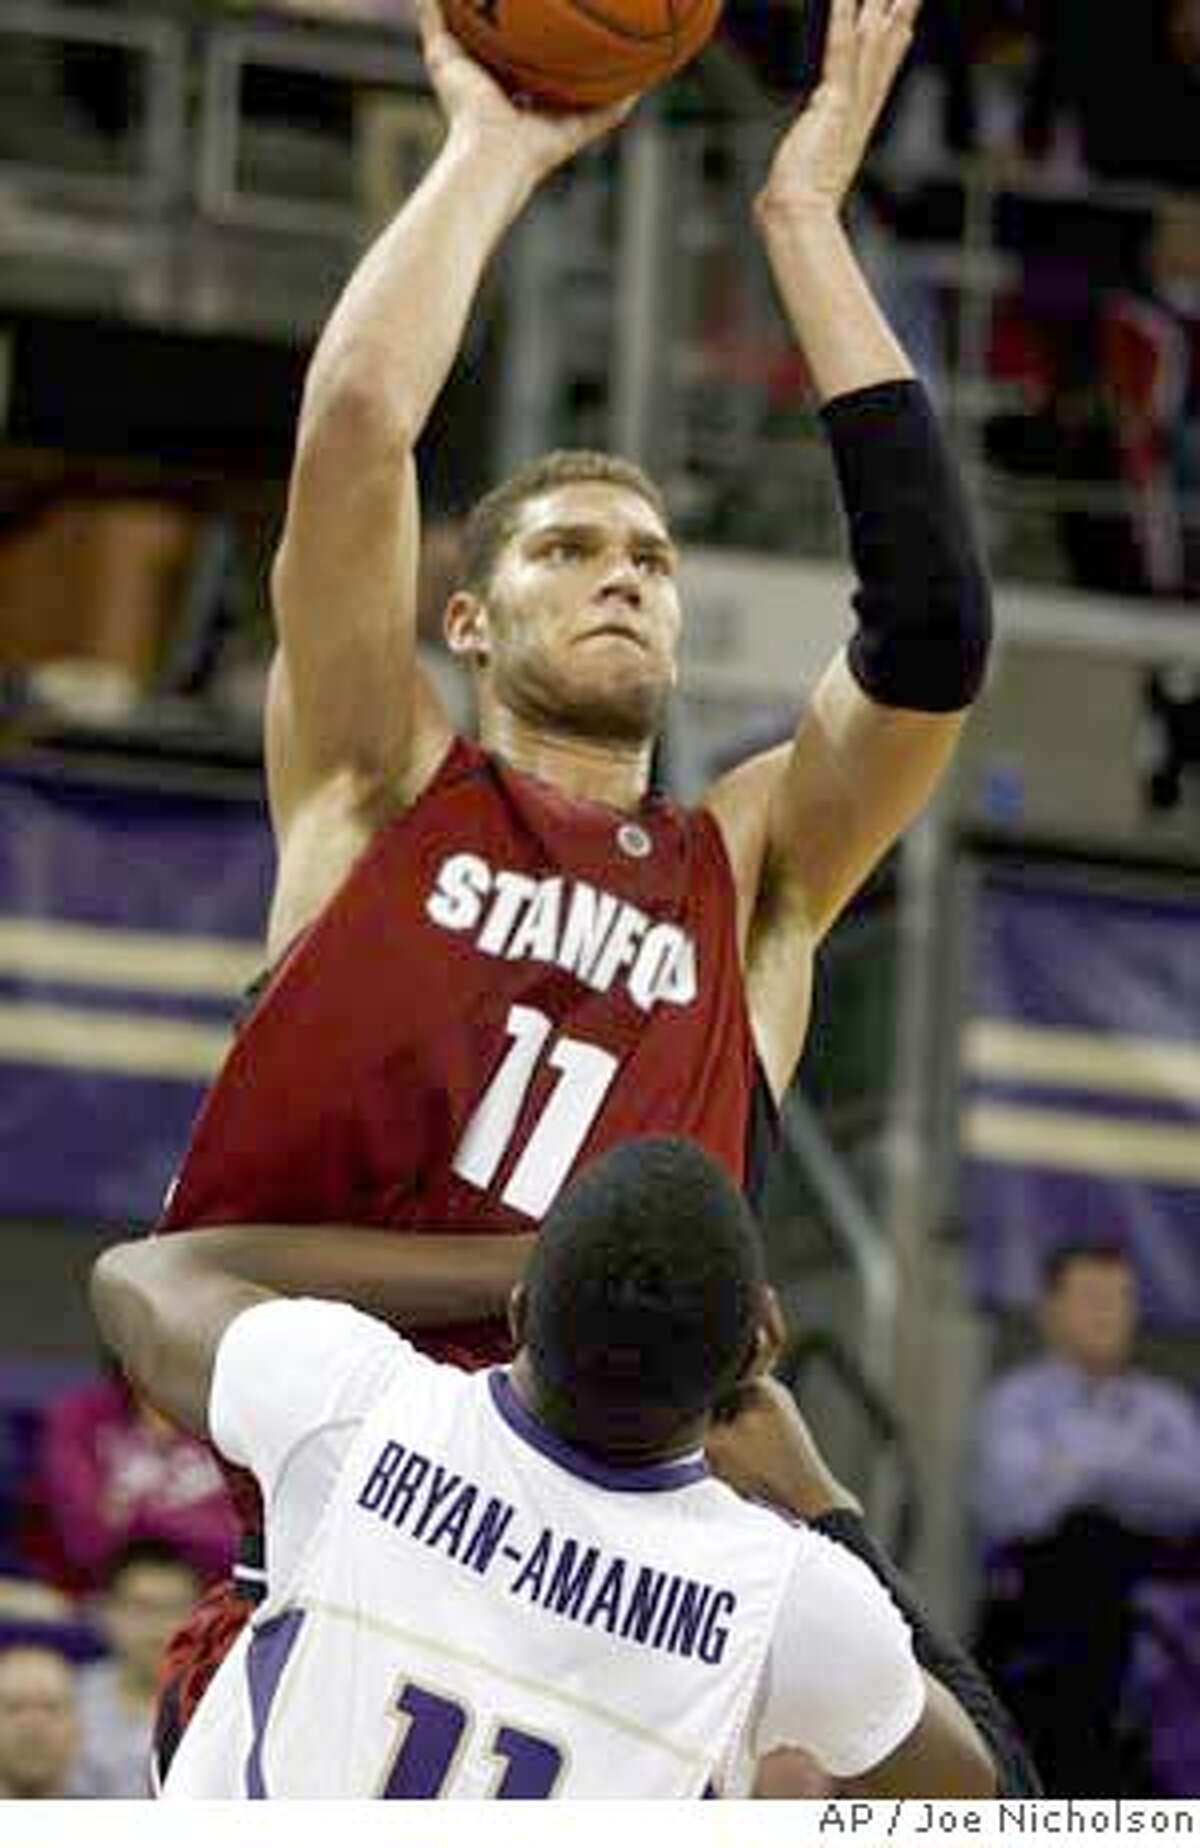 Stanford forward Brook Lopez (11) shoots over Washington forward Matthew Bryan-Amaning (11) in the second half of a college basketball game, Thursday, Jan. 31, 2008 in Seattle. (AP Photo/Joe Nicholson) EFE OUT